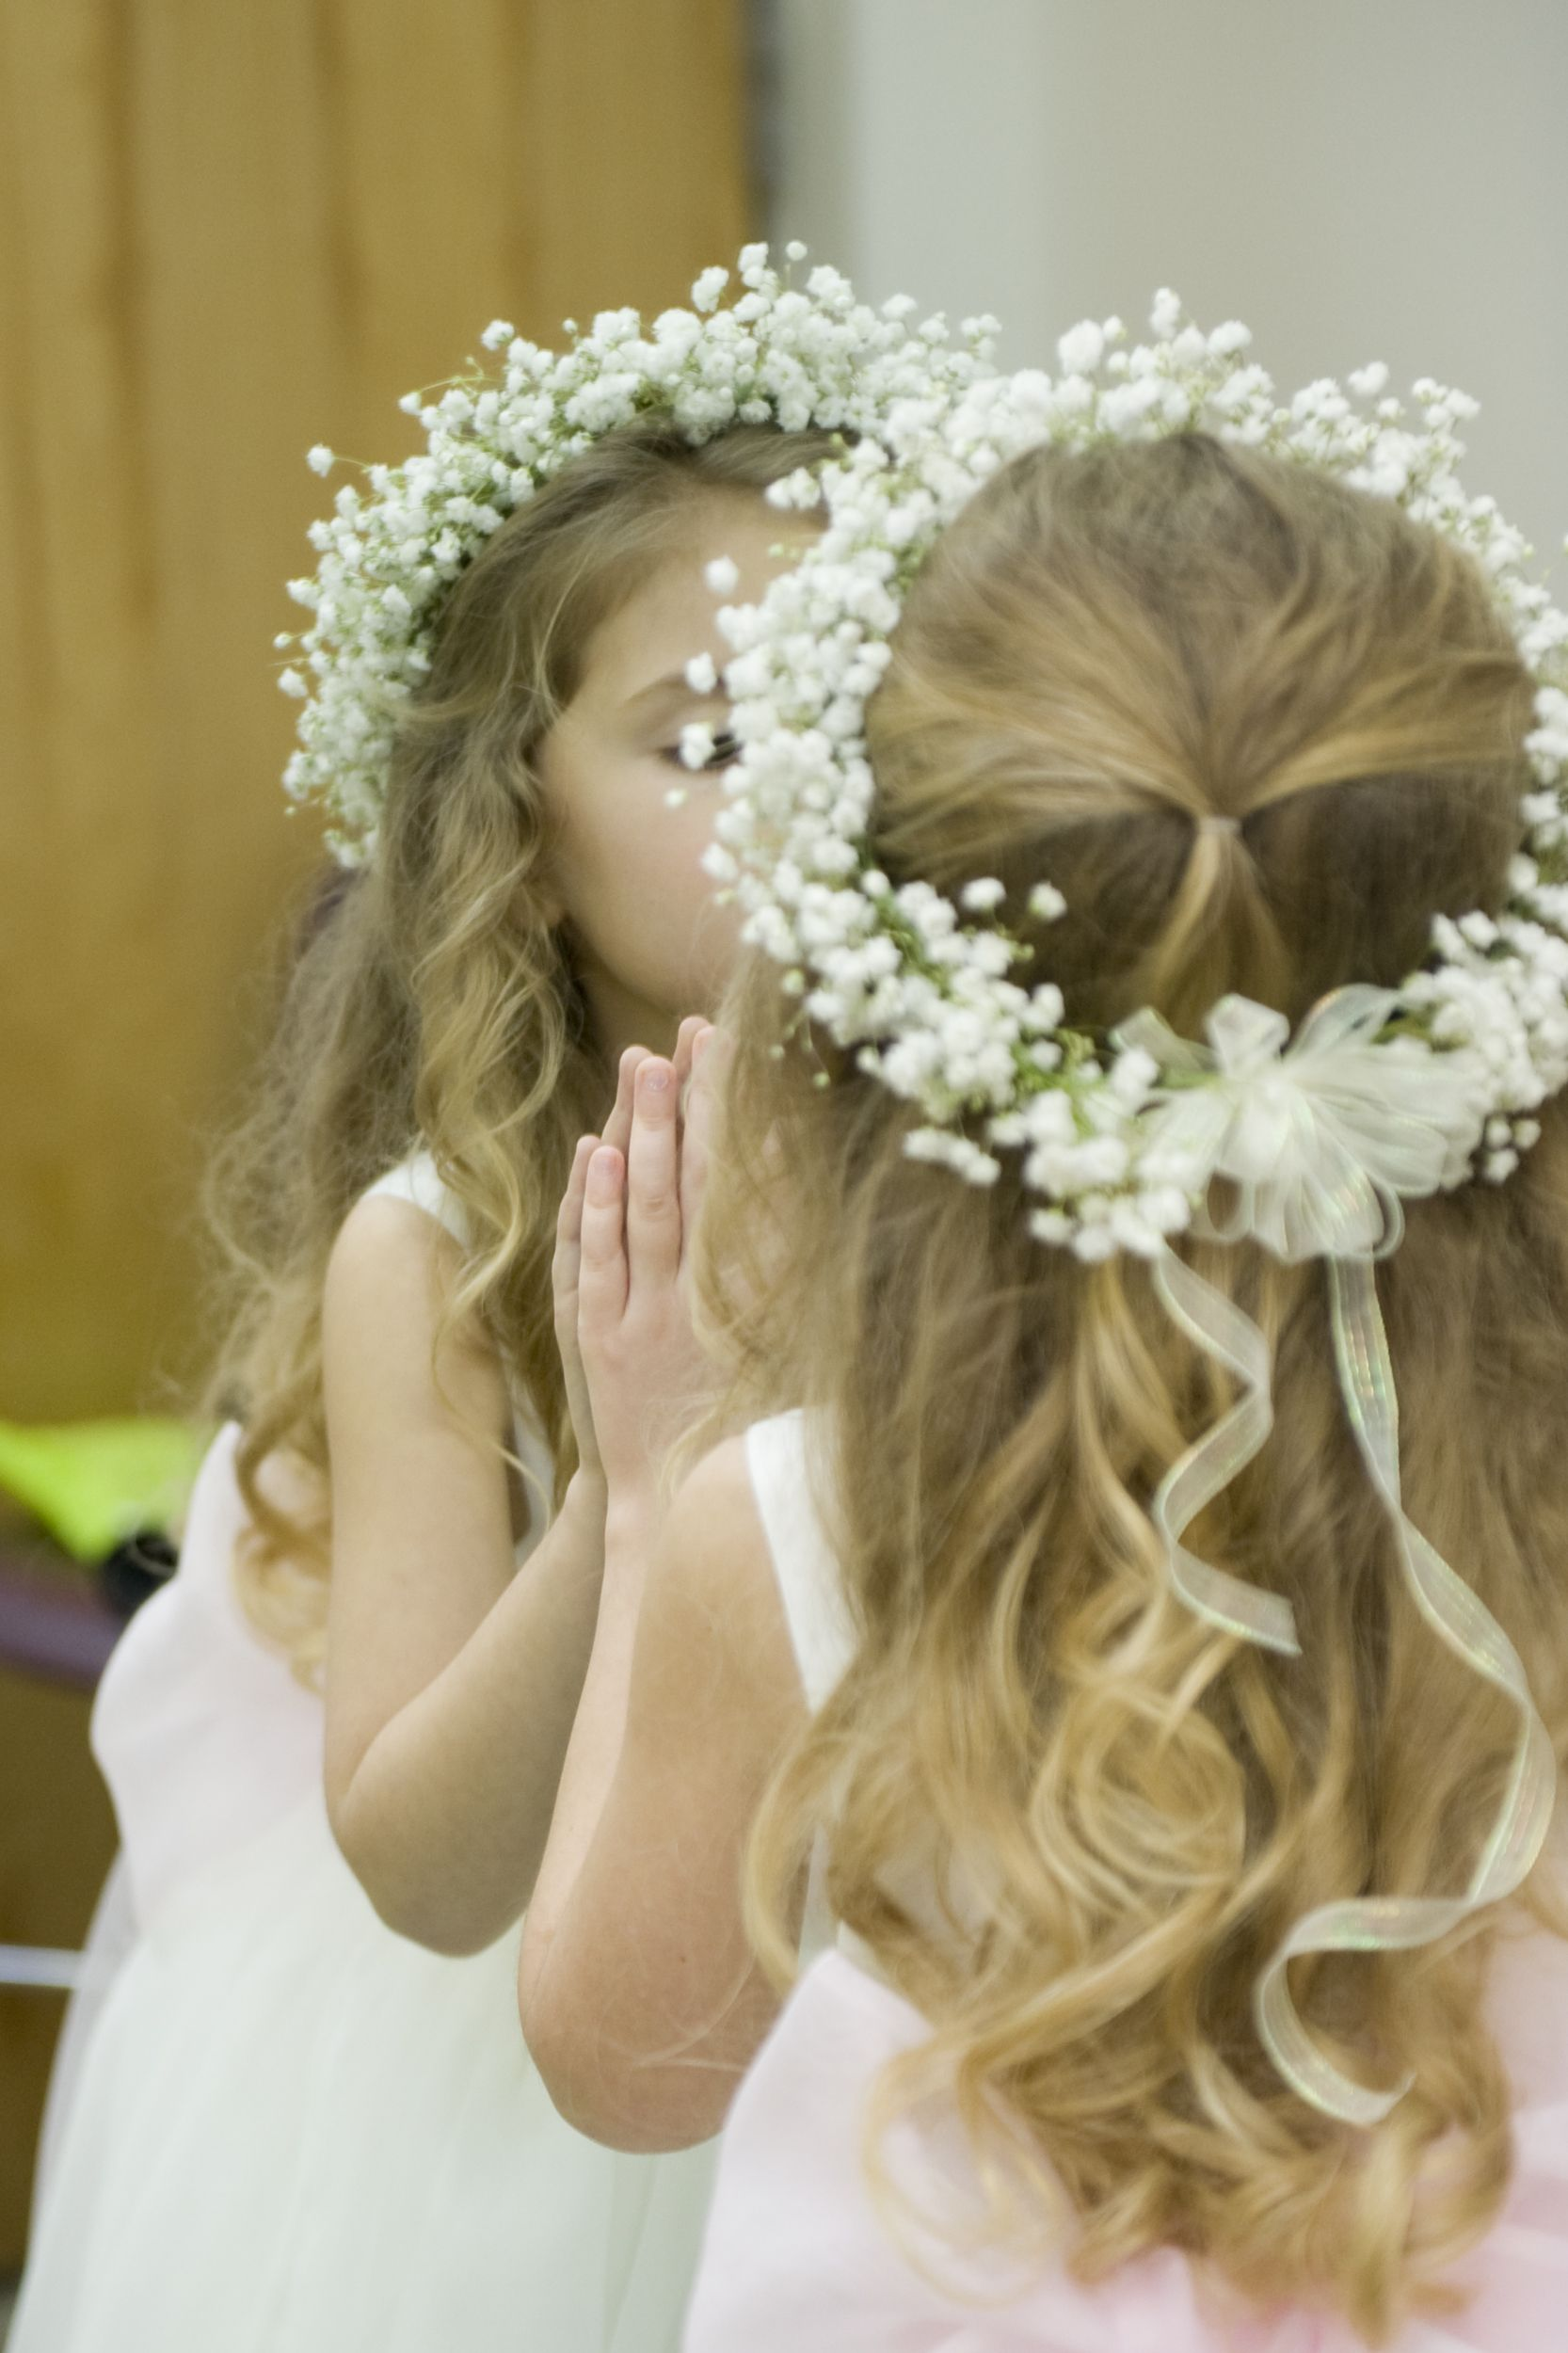 Pin By Lisa Waller On Engagement And Wedding Flower Girl Halo Girls Halo Flower Girl Hairstyles